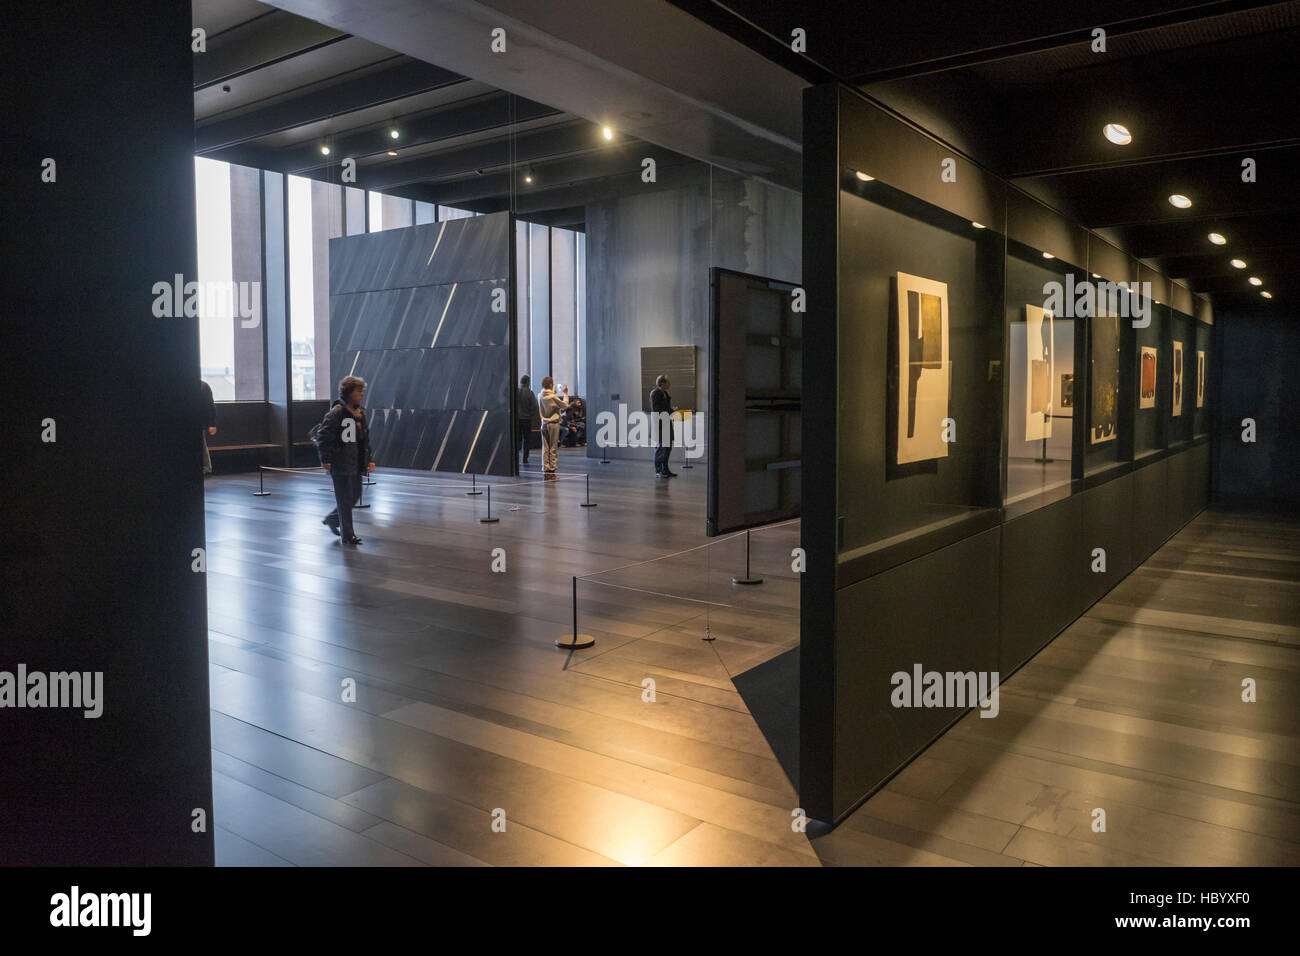 Musée Soulages, Soulages Museum, designed by the Catalan architects RCR associated with Passelac & Roques, - Stock Image